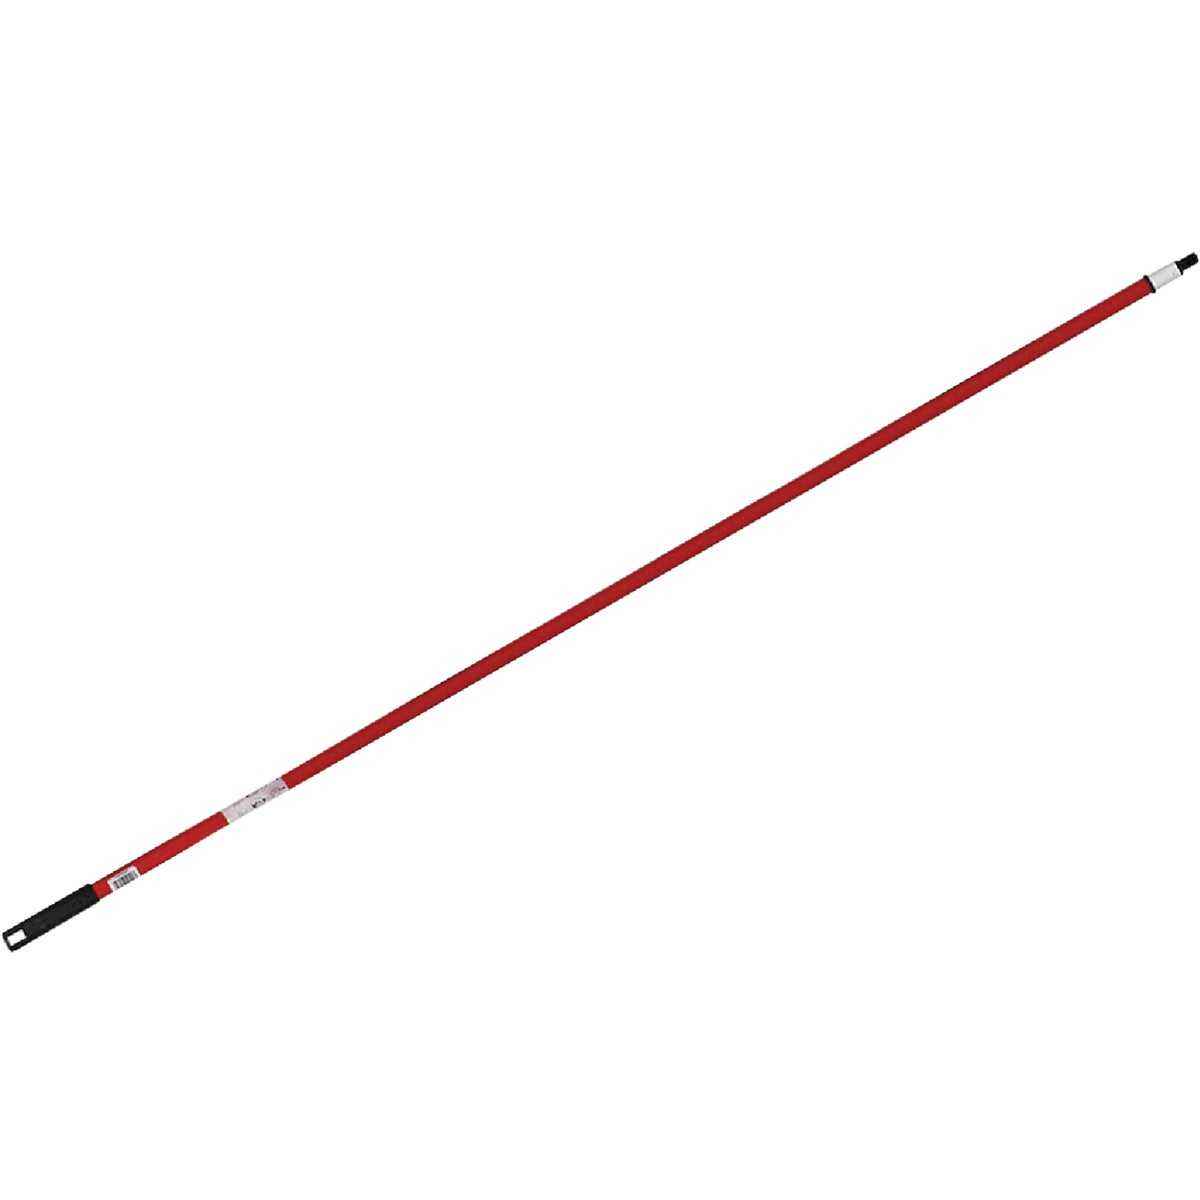 10' TELESCOPIC HANDLE - 6-52120-R by Bruske Products